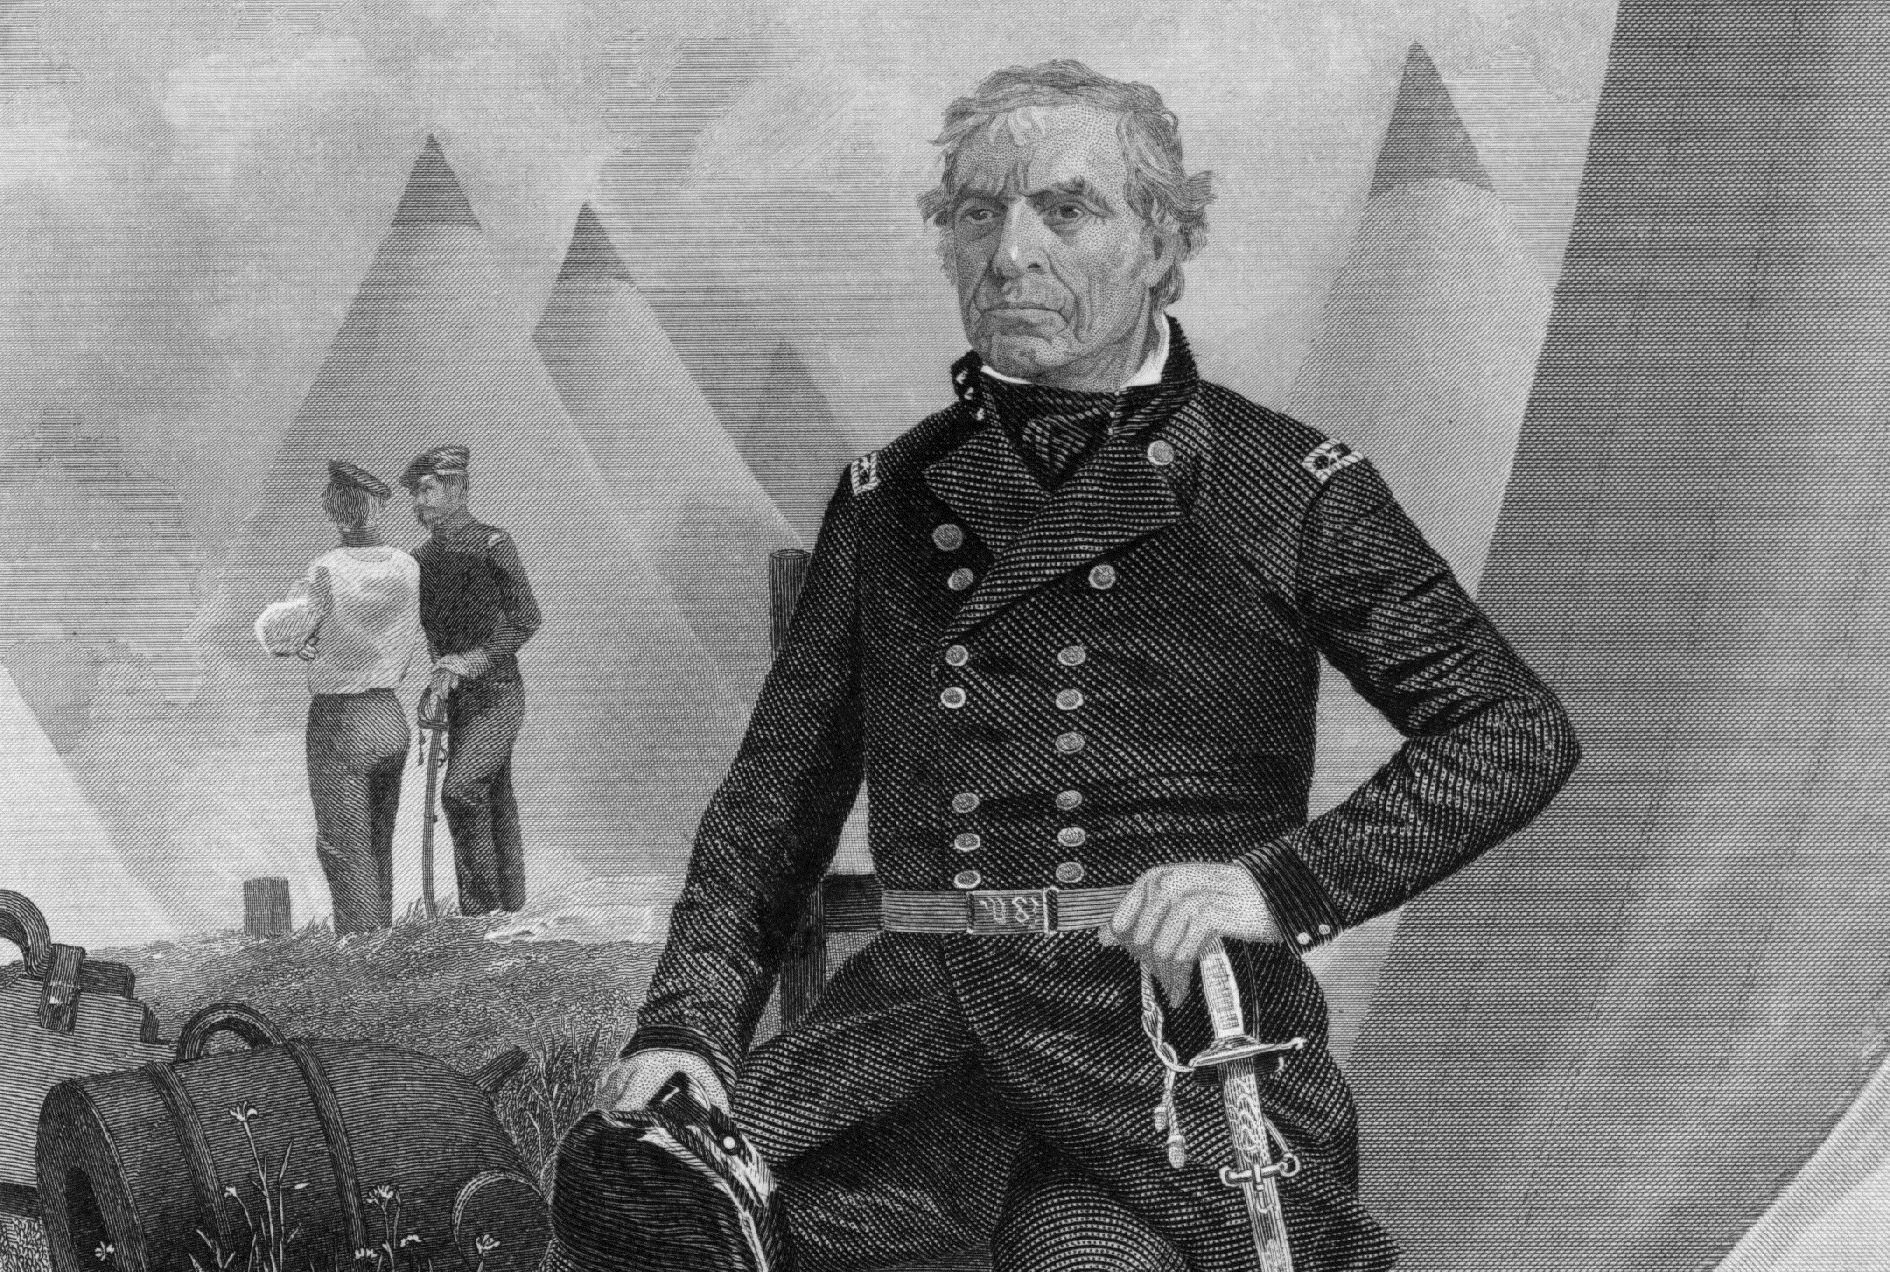 Engraved portrait of Zachary Taylor in military uniform